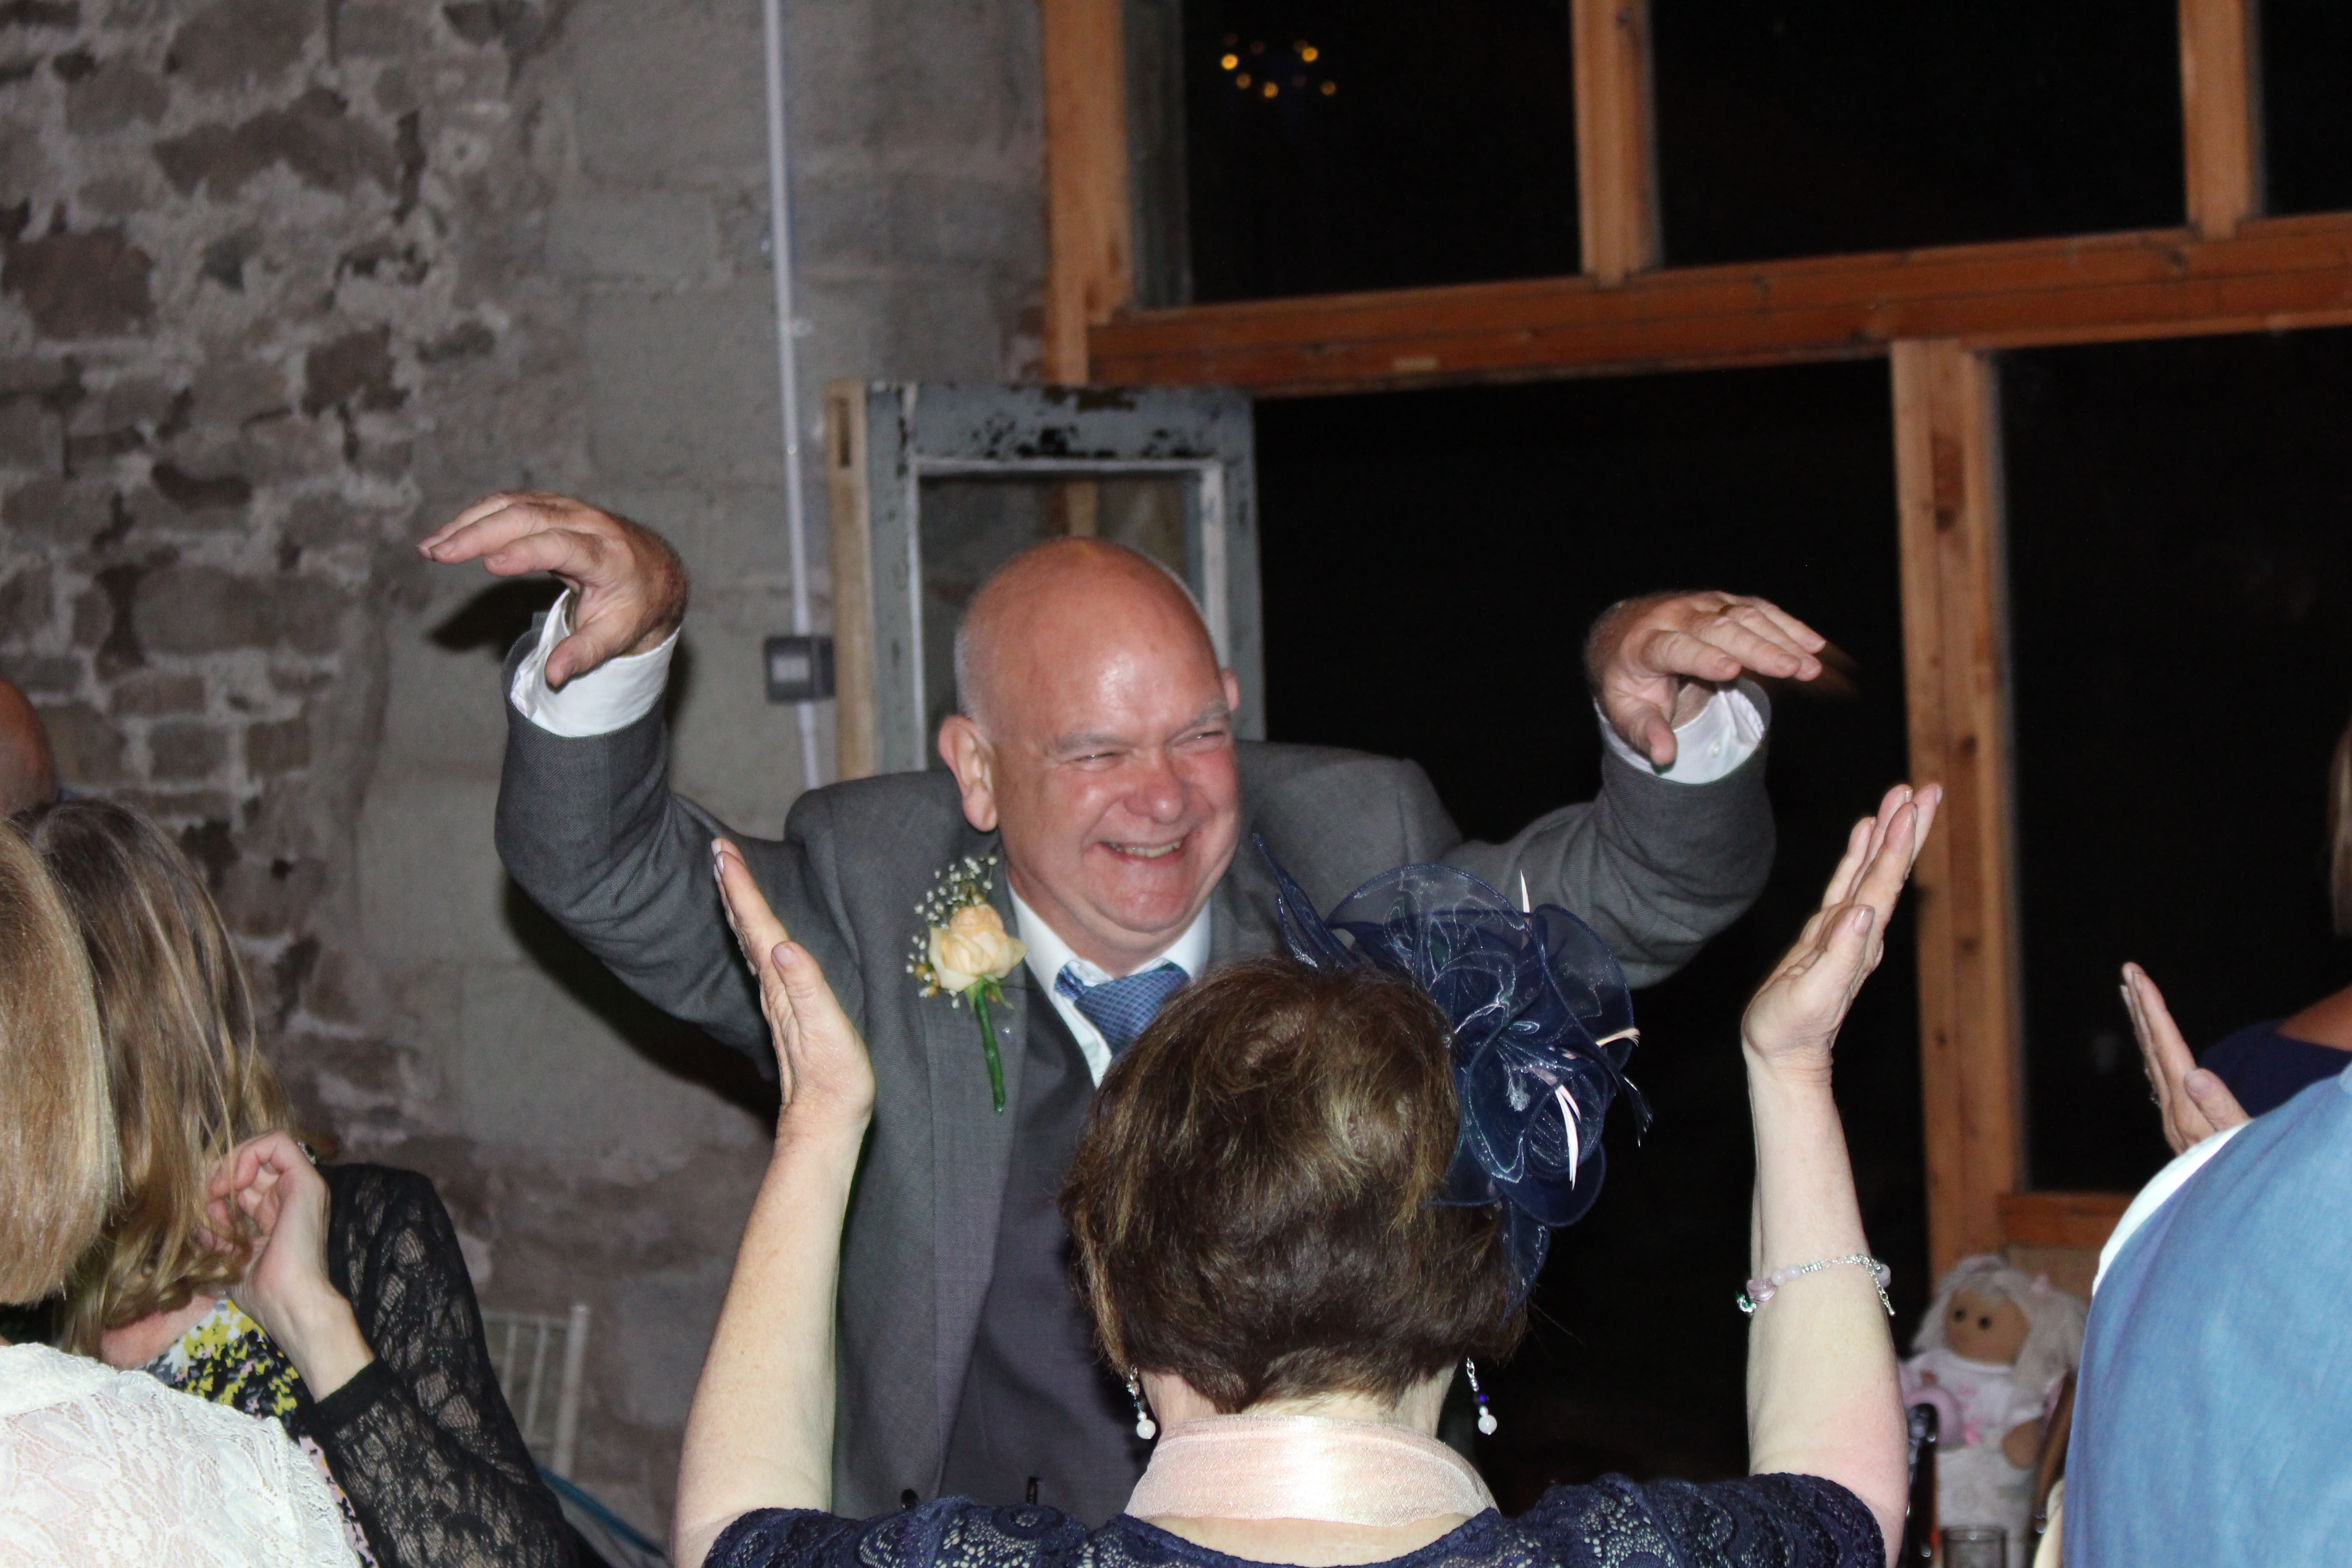 This is how you Dad Dance!